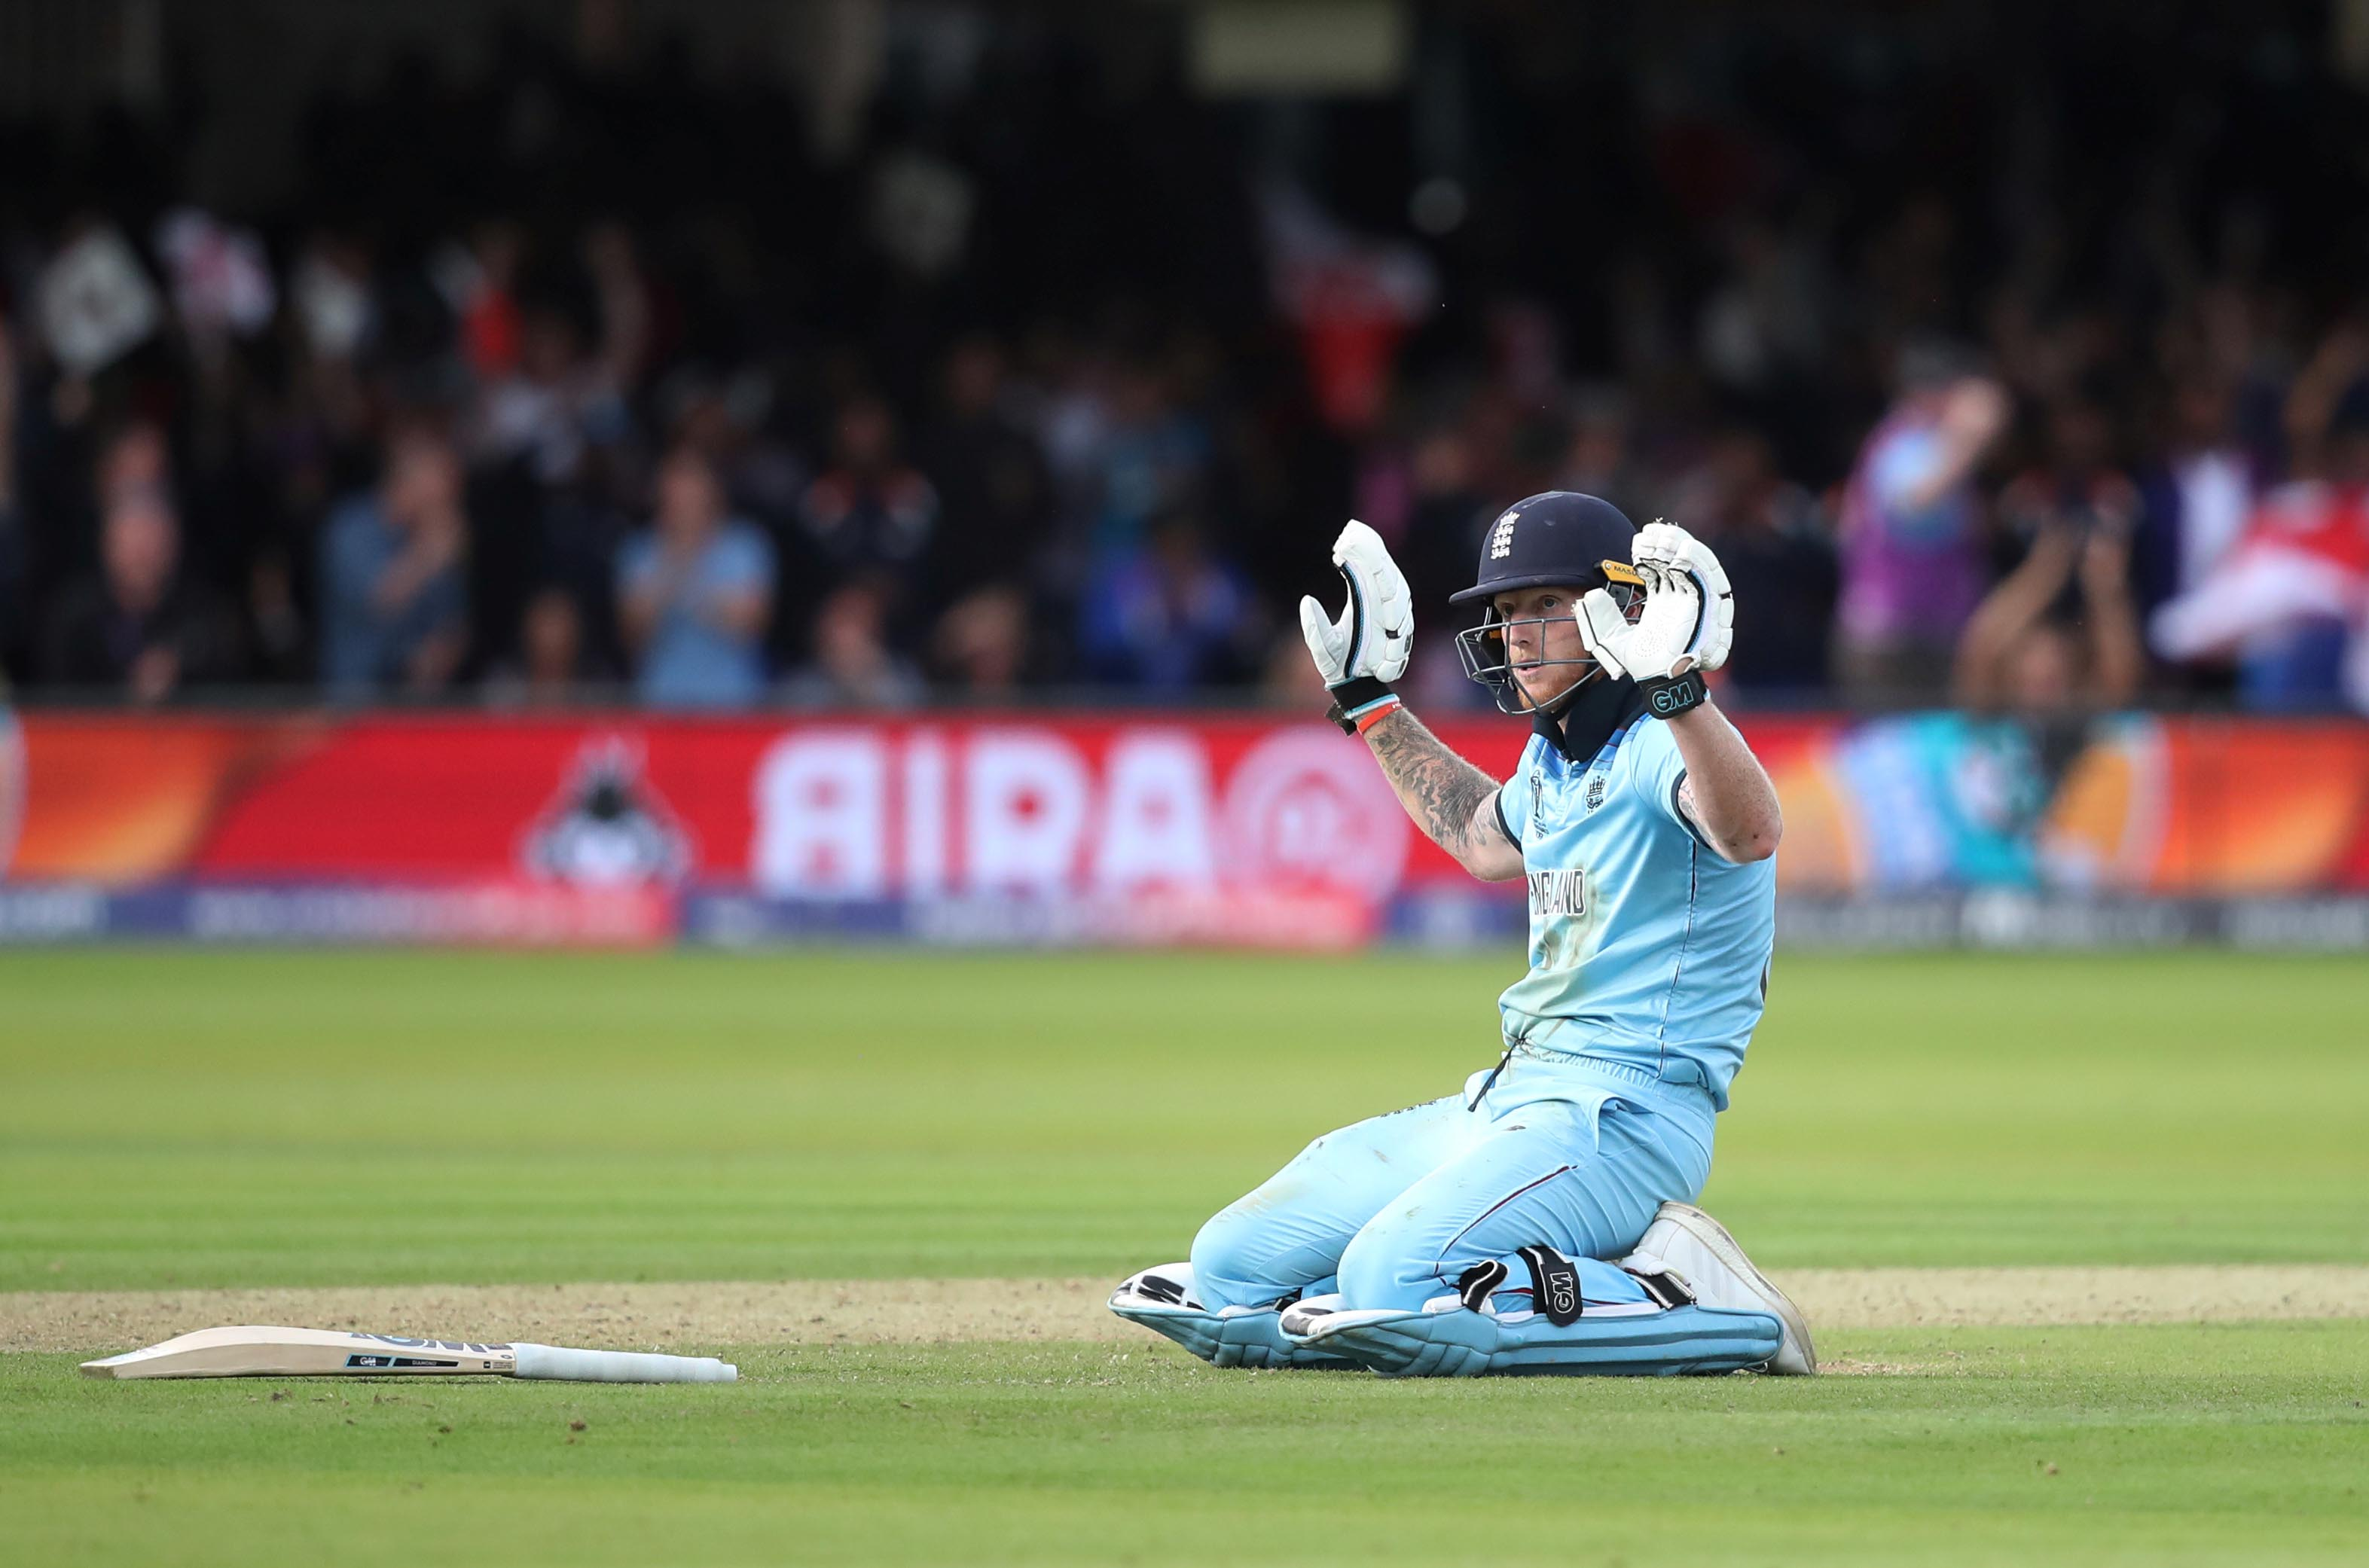 Cricket - ICC Cricket World Cup Final - New Zealand v England - Lord's, London, Britain - July 14, 2019 England's Ben Stokes reacts after a six Action Images via Reuters/Peter Cziborra